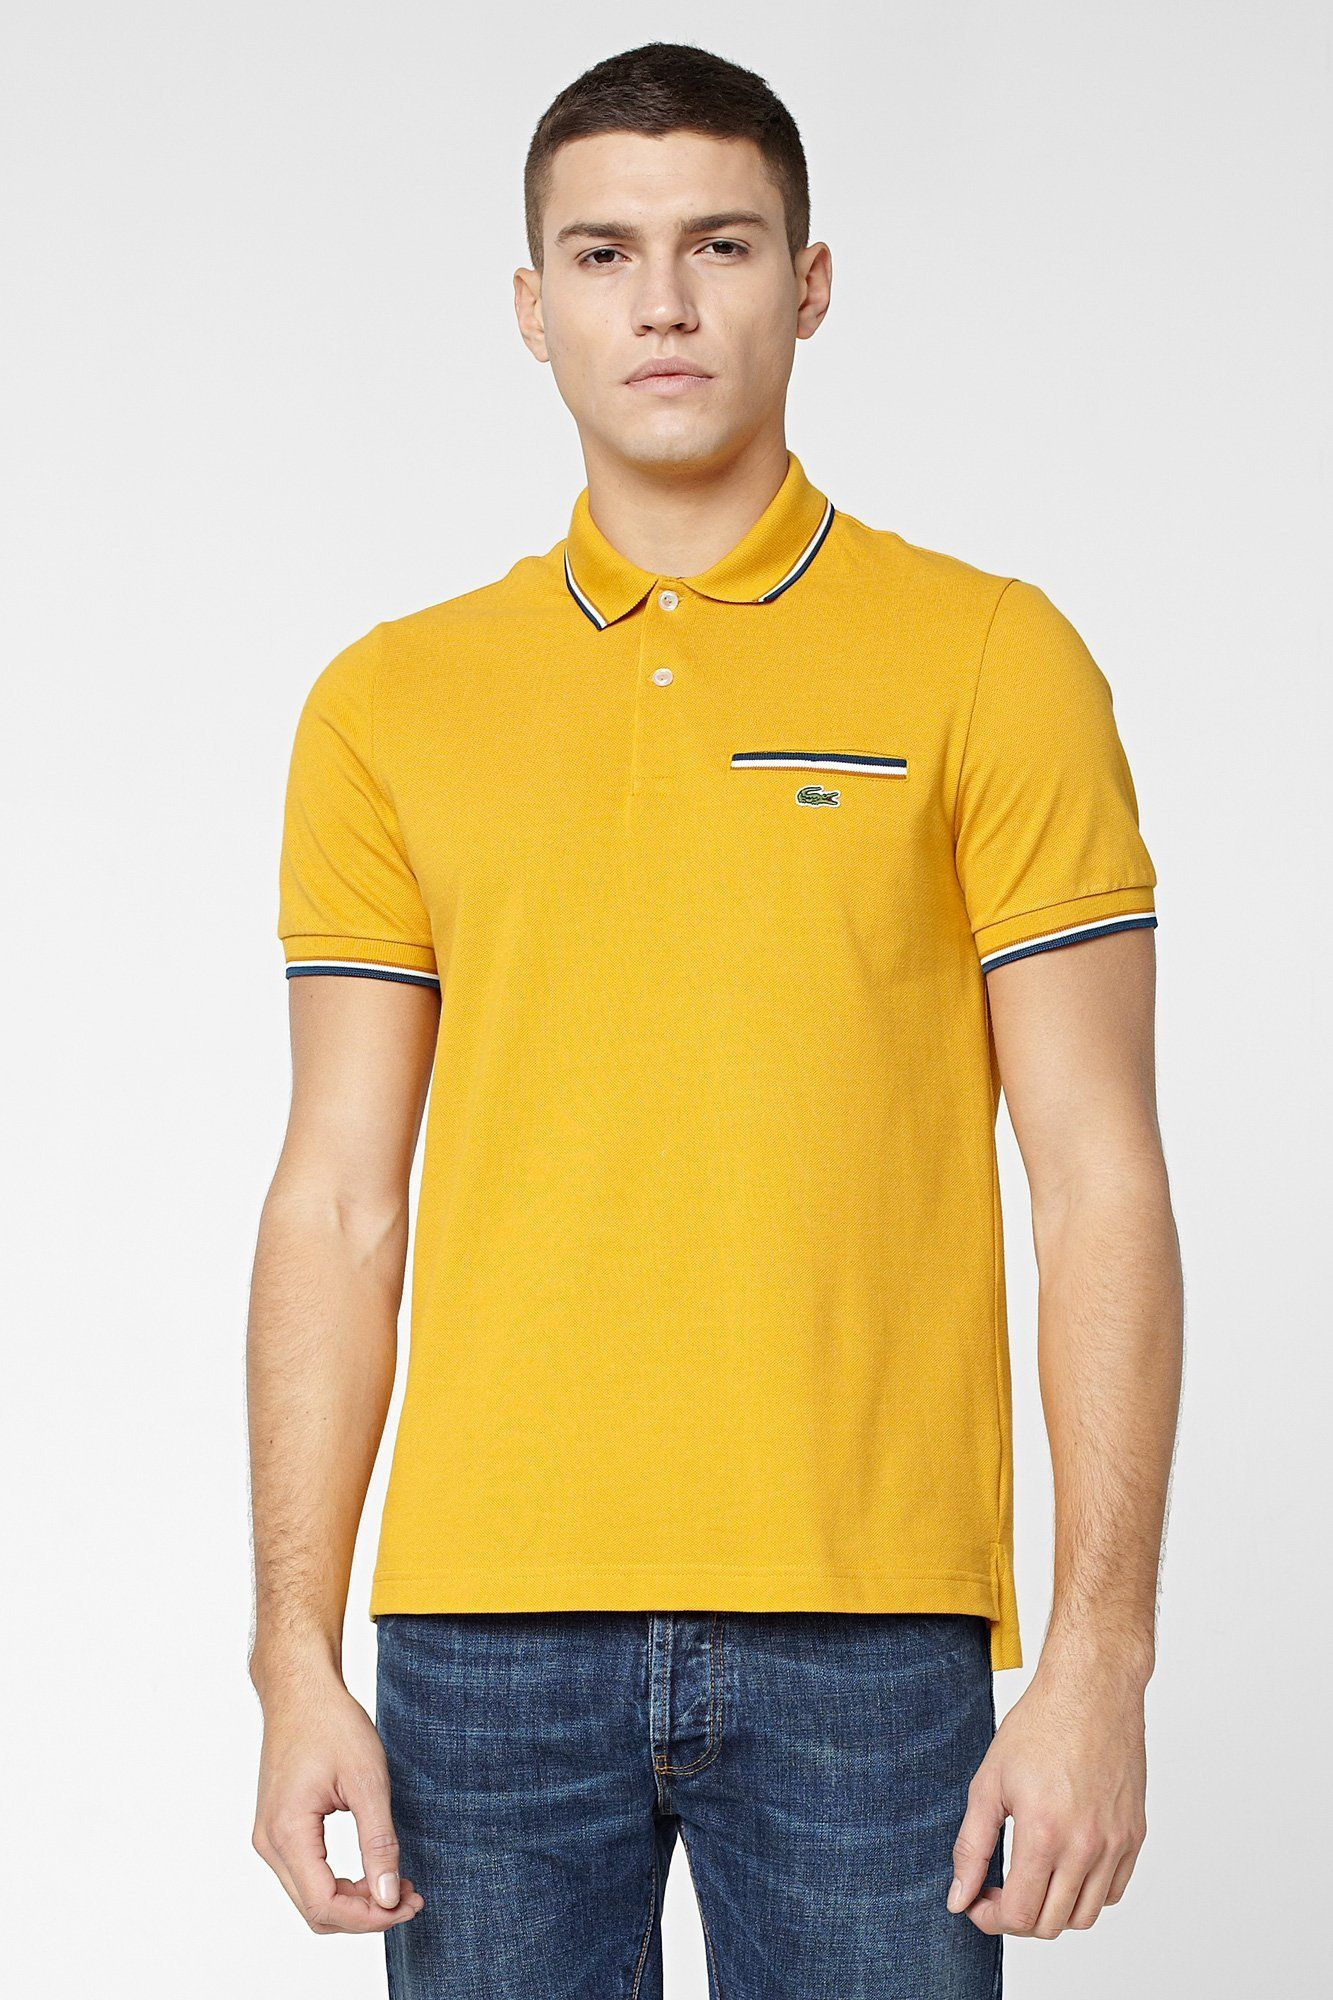 8f5acf840d486 Lacoste L!VE Short Sleeve Semi Fancy Tipped Pique Polo With Pocket   L!